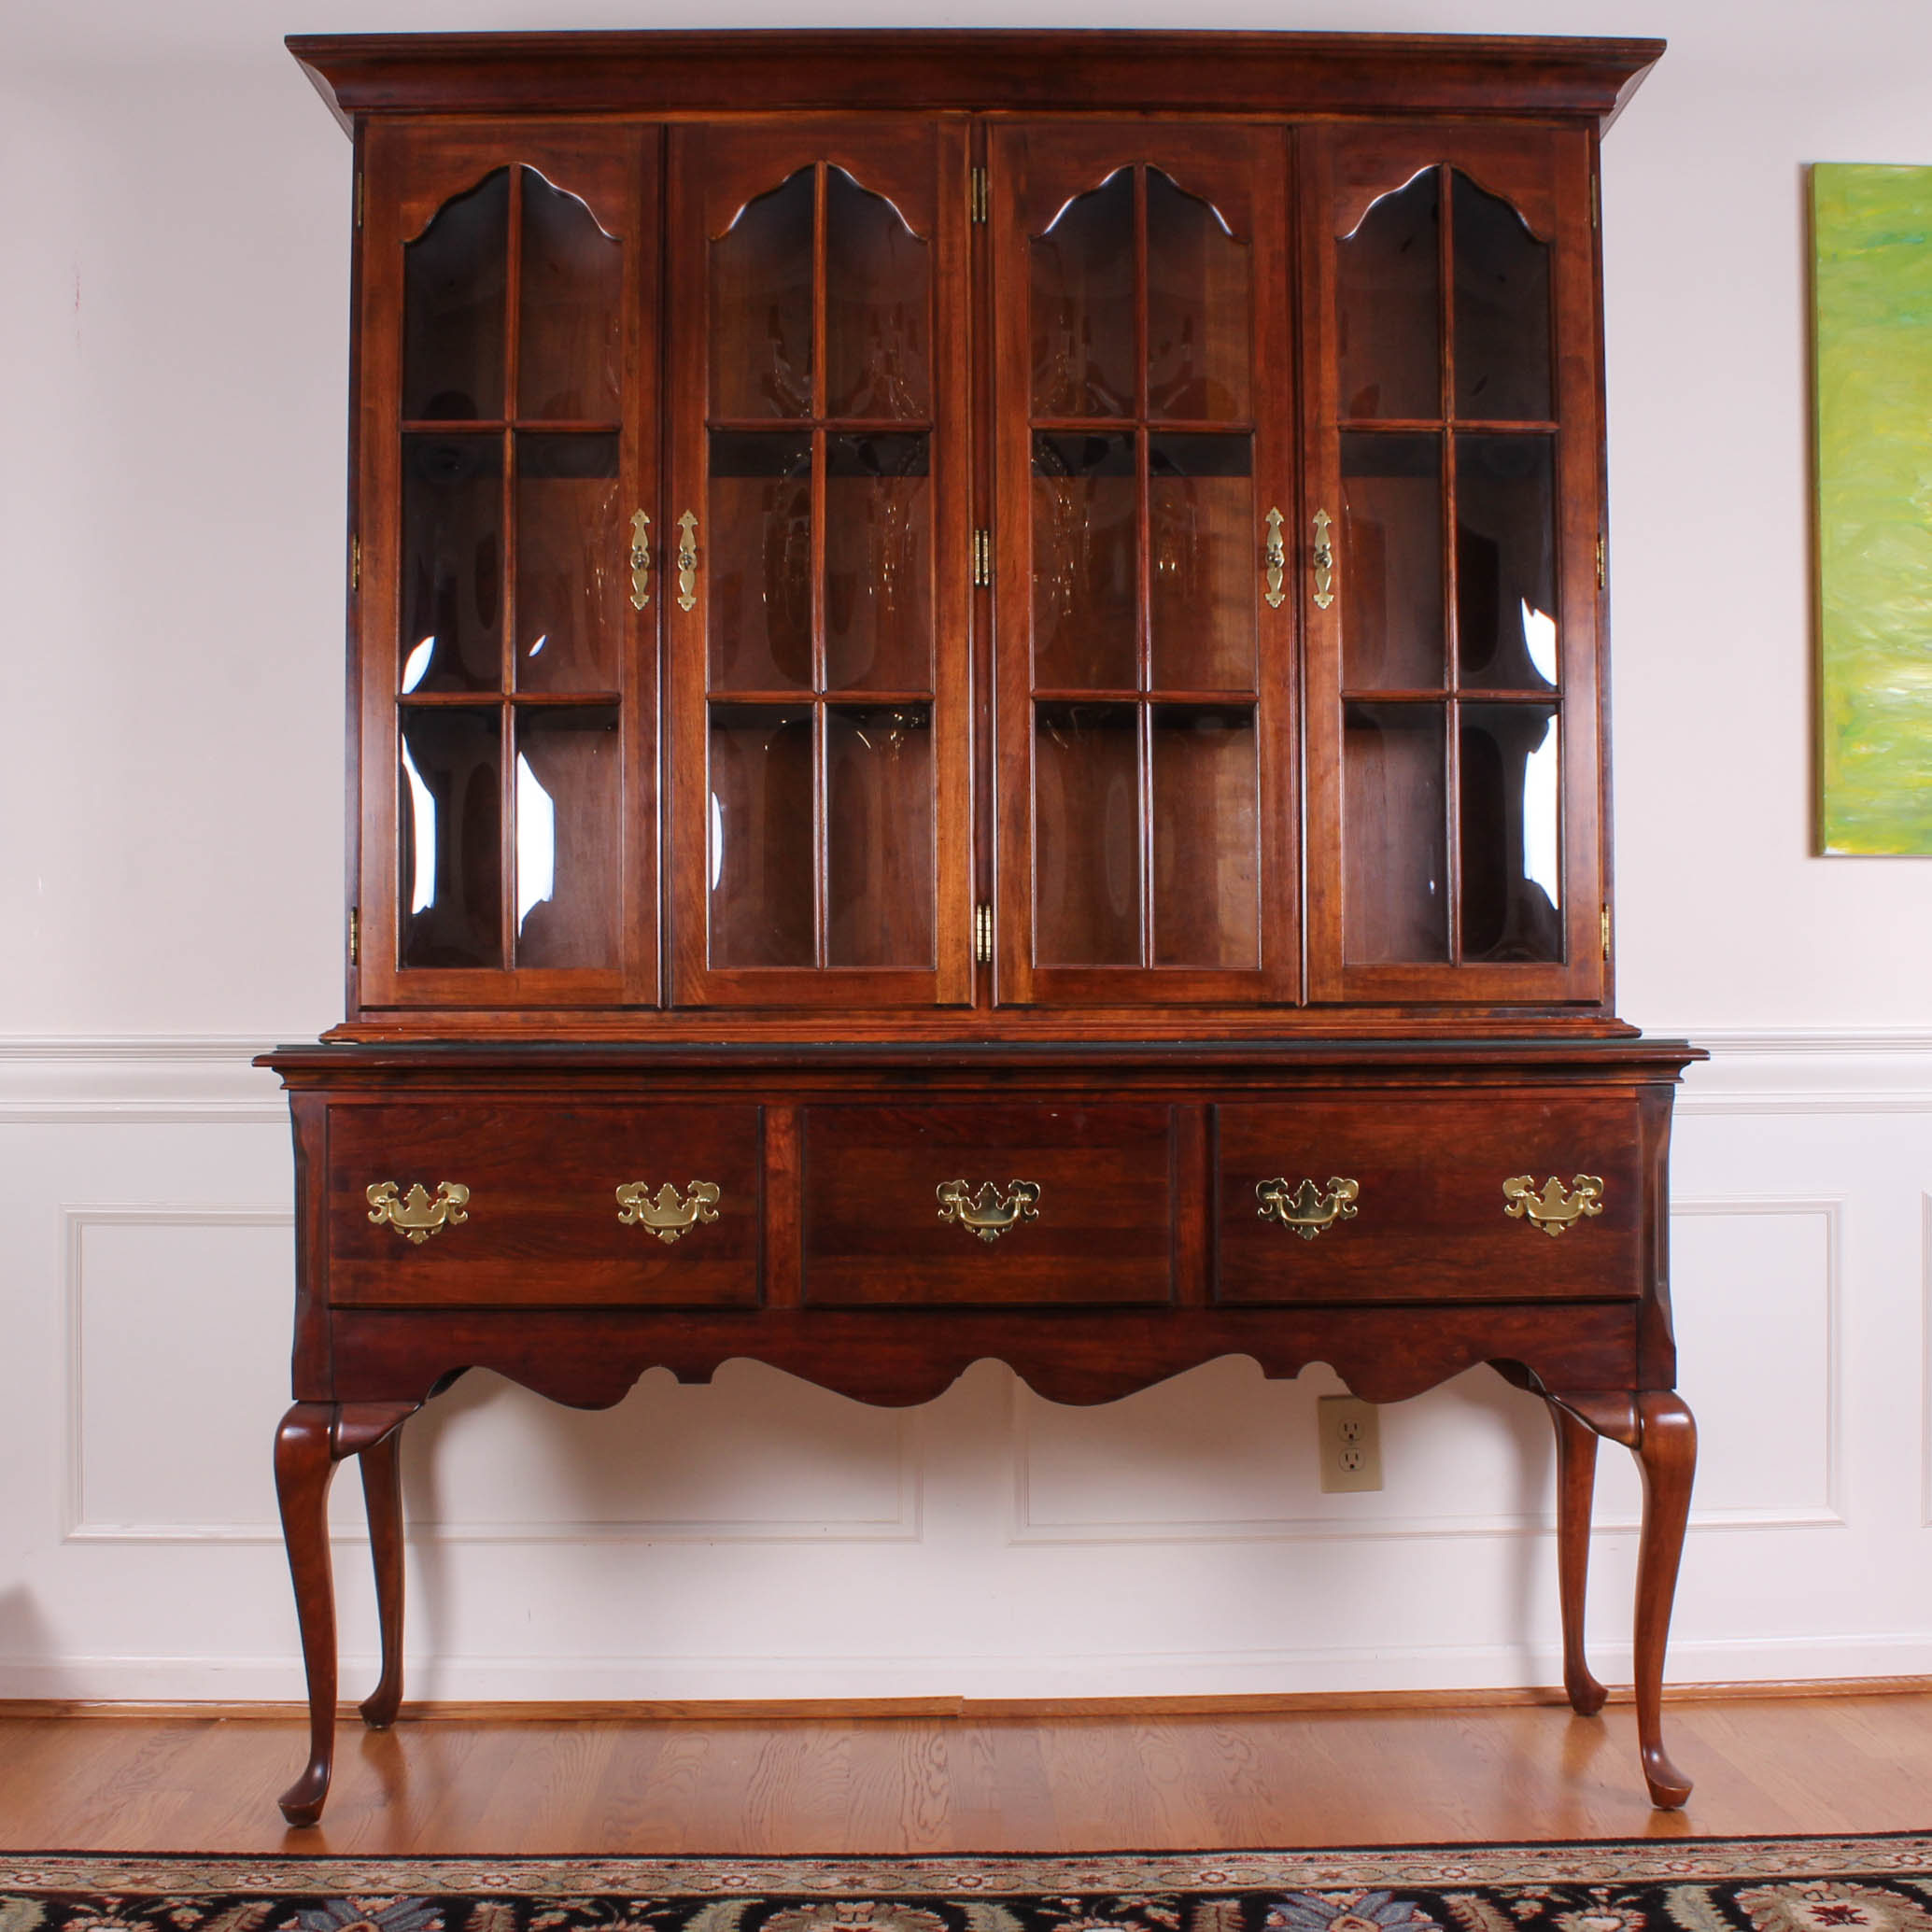 Queen Anne Style Sideboard with China Cabinet : EBTH